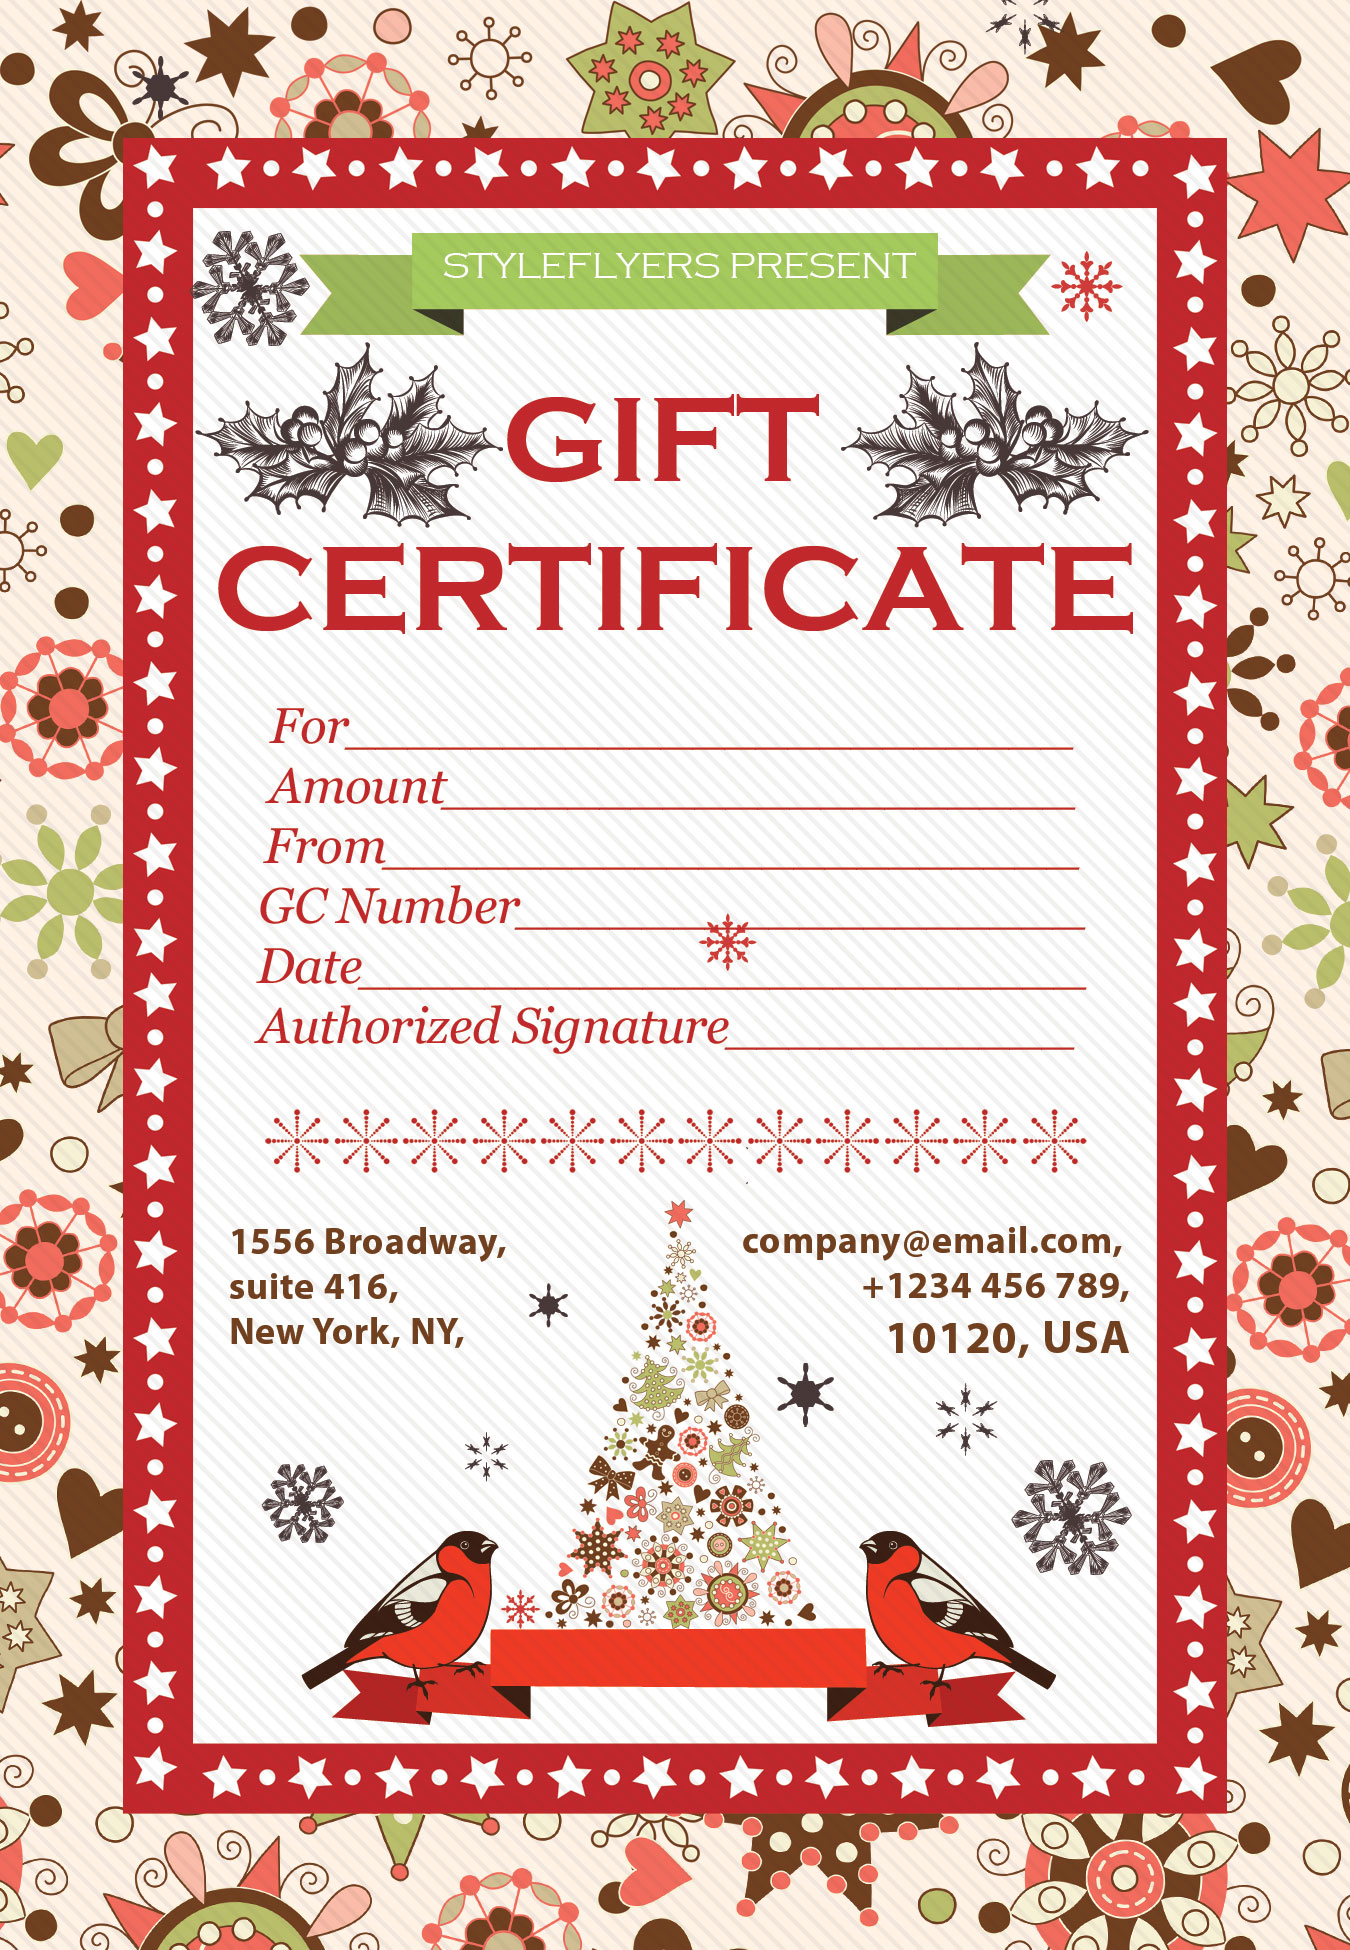 gift-certificate-flyer